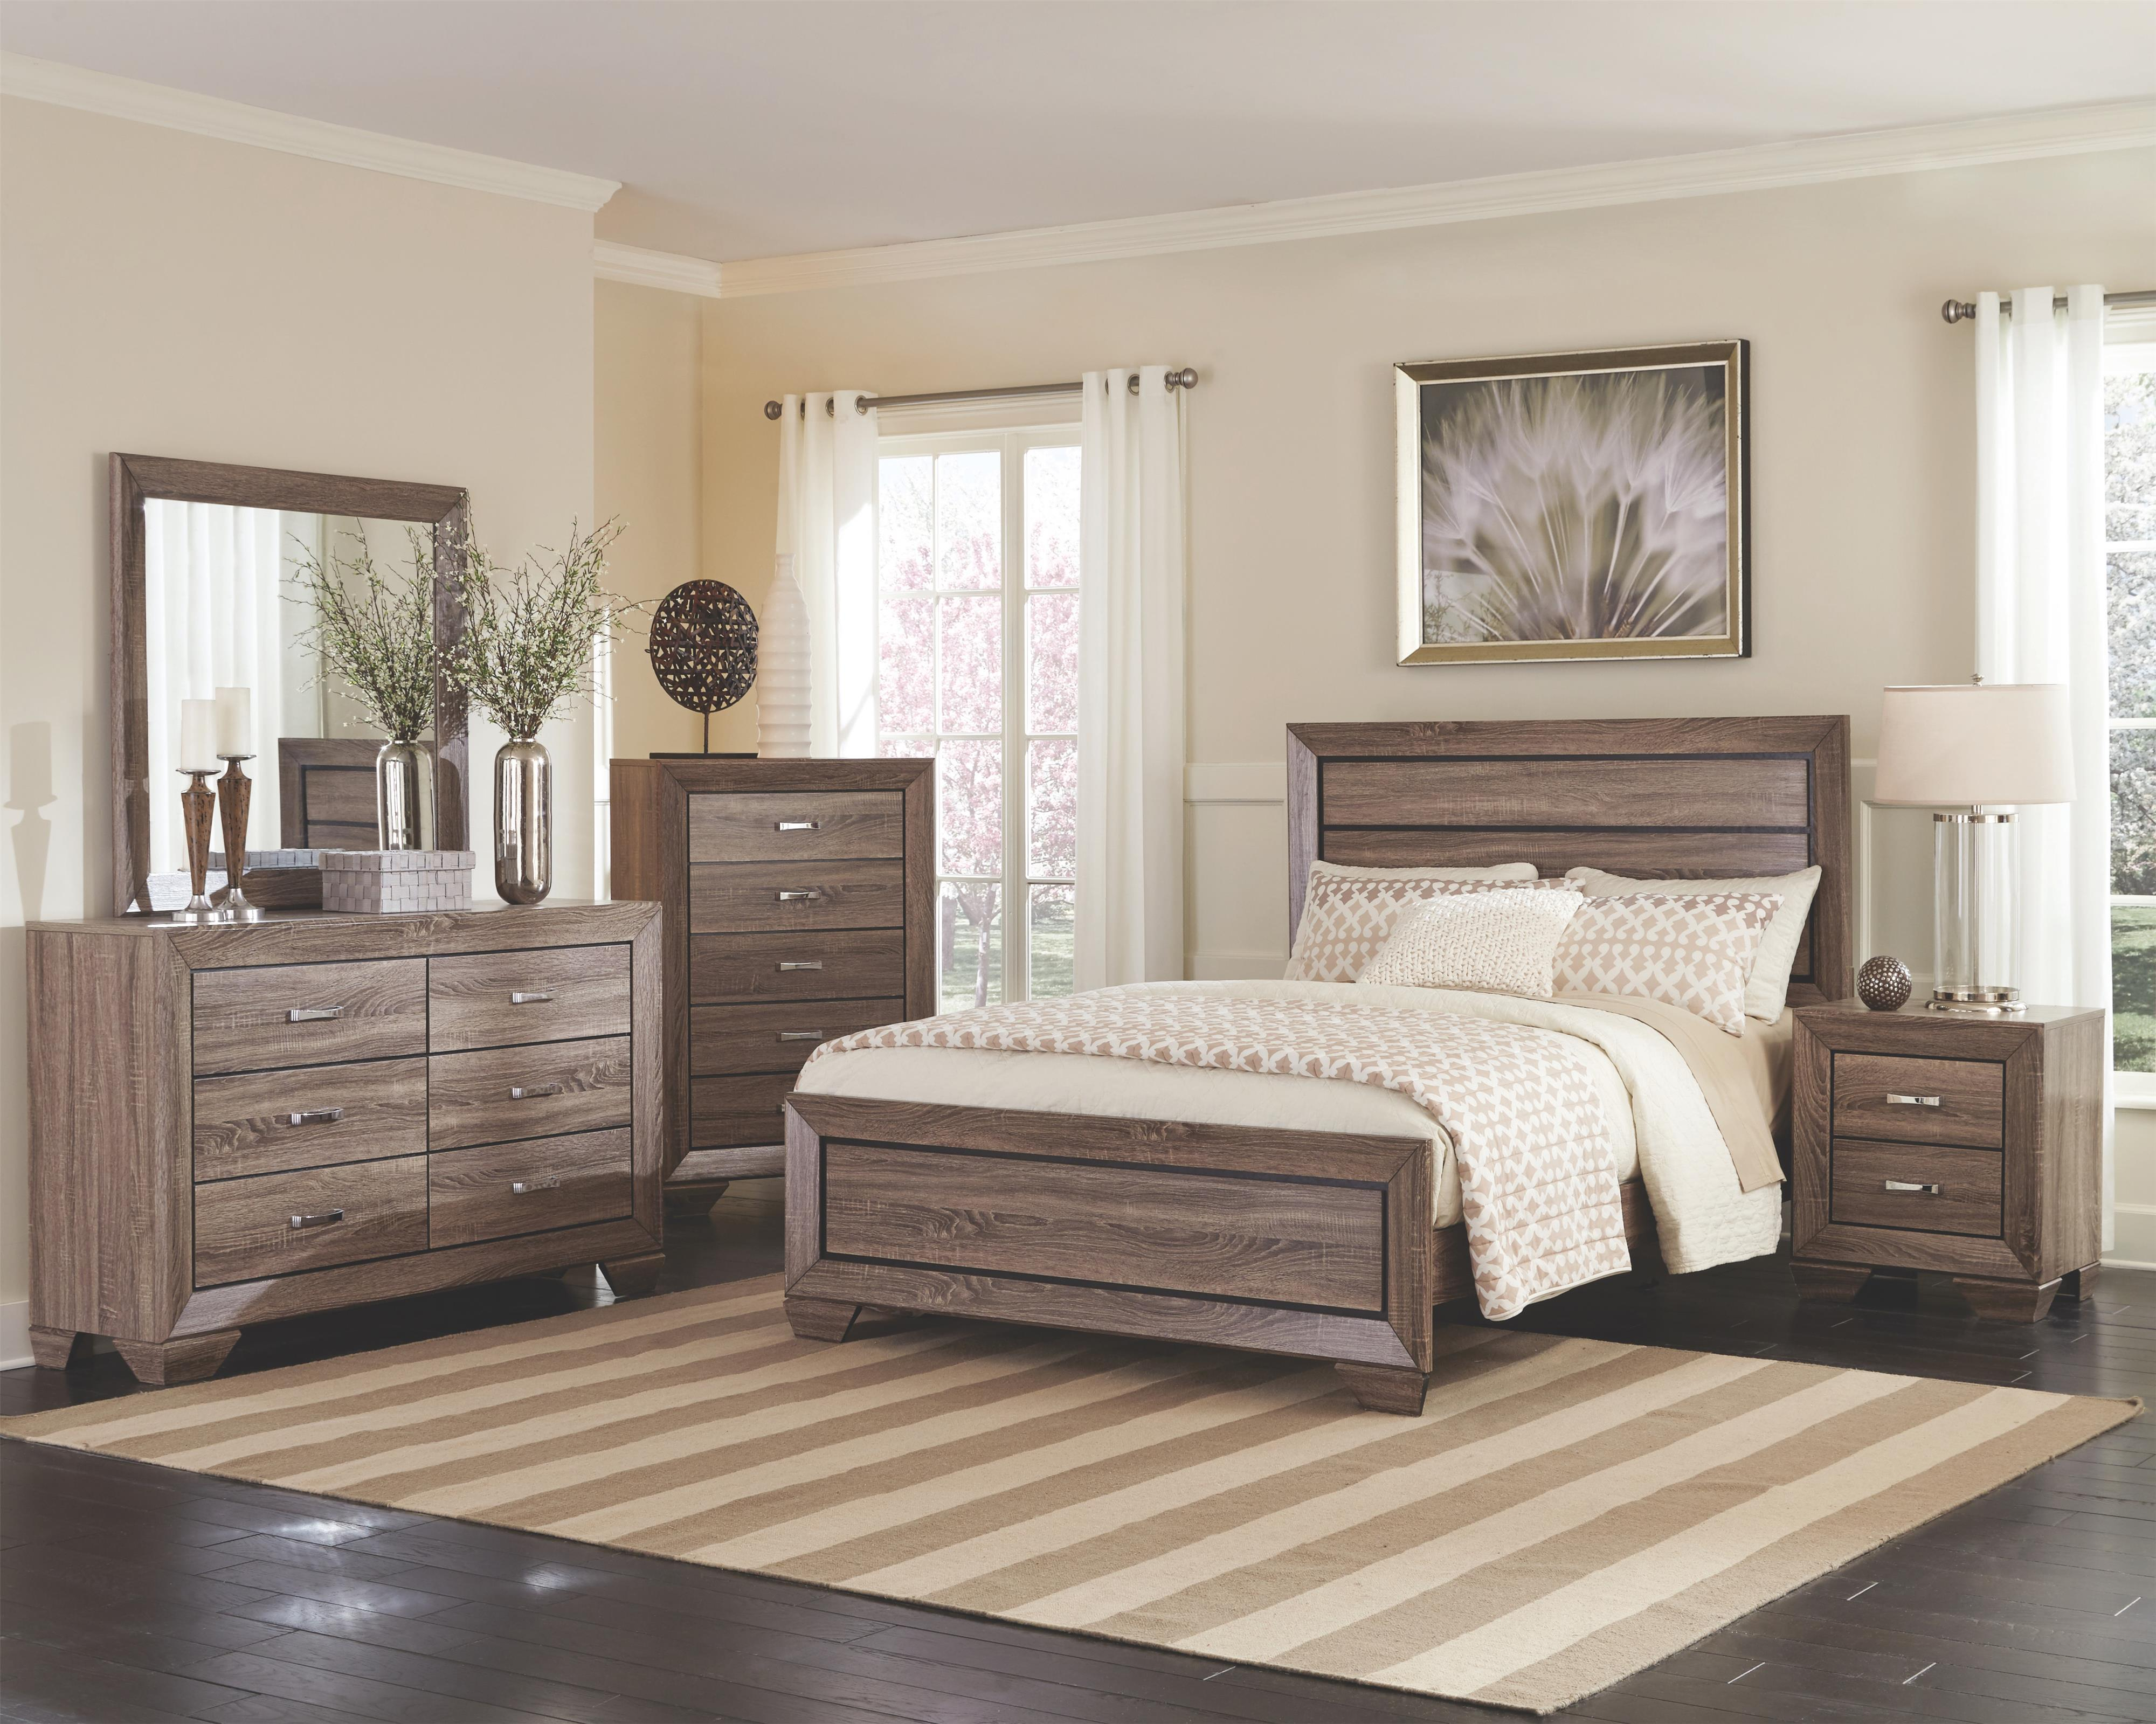 Kauffman King Bedroom Group by Coaster at Northeast Factory Direct